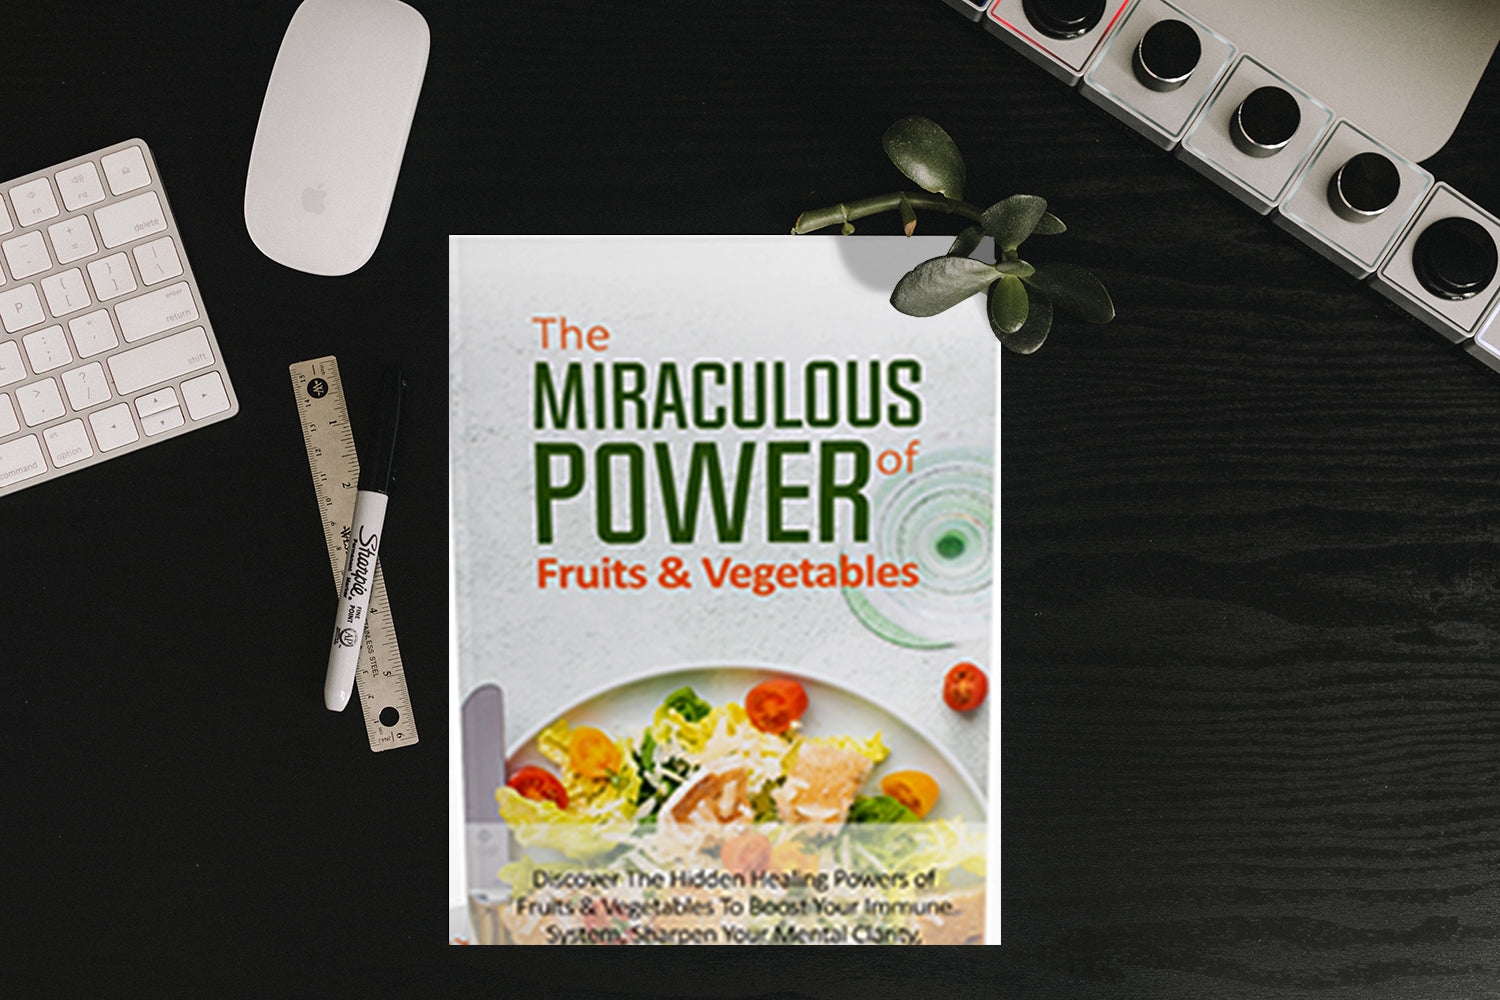 The Miraculous Power Of Fruit And Vegetables